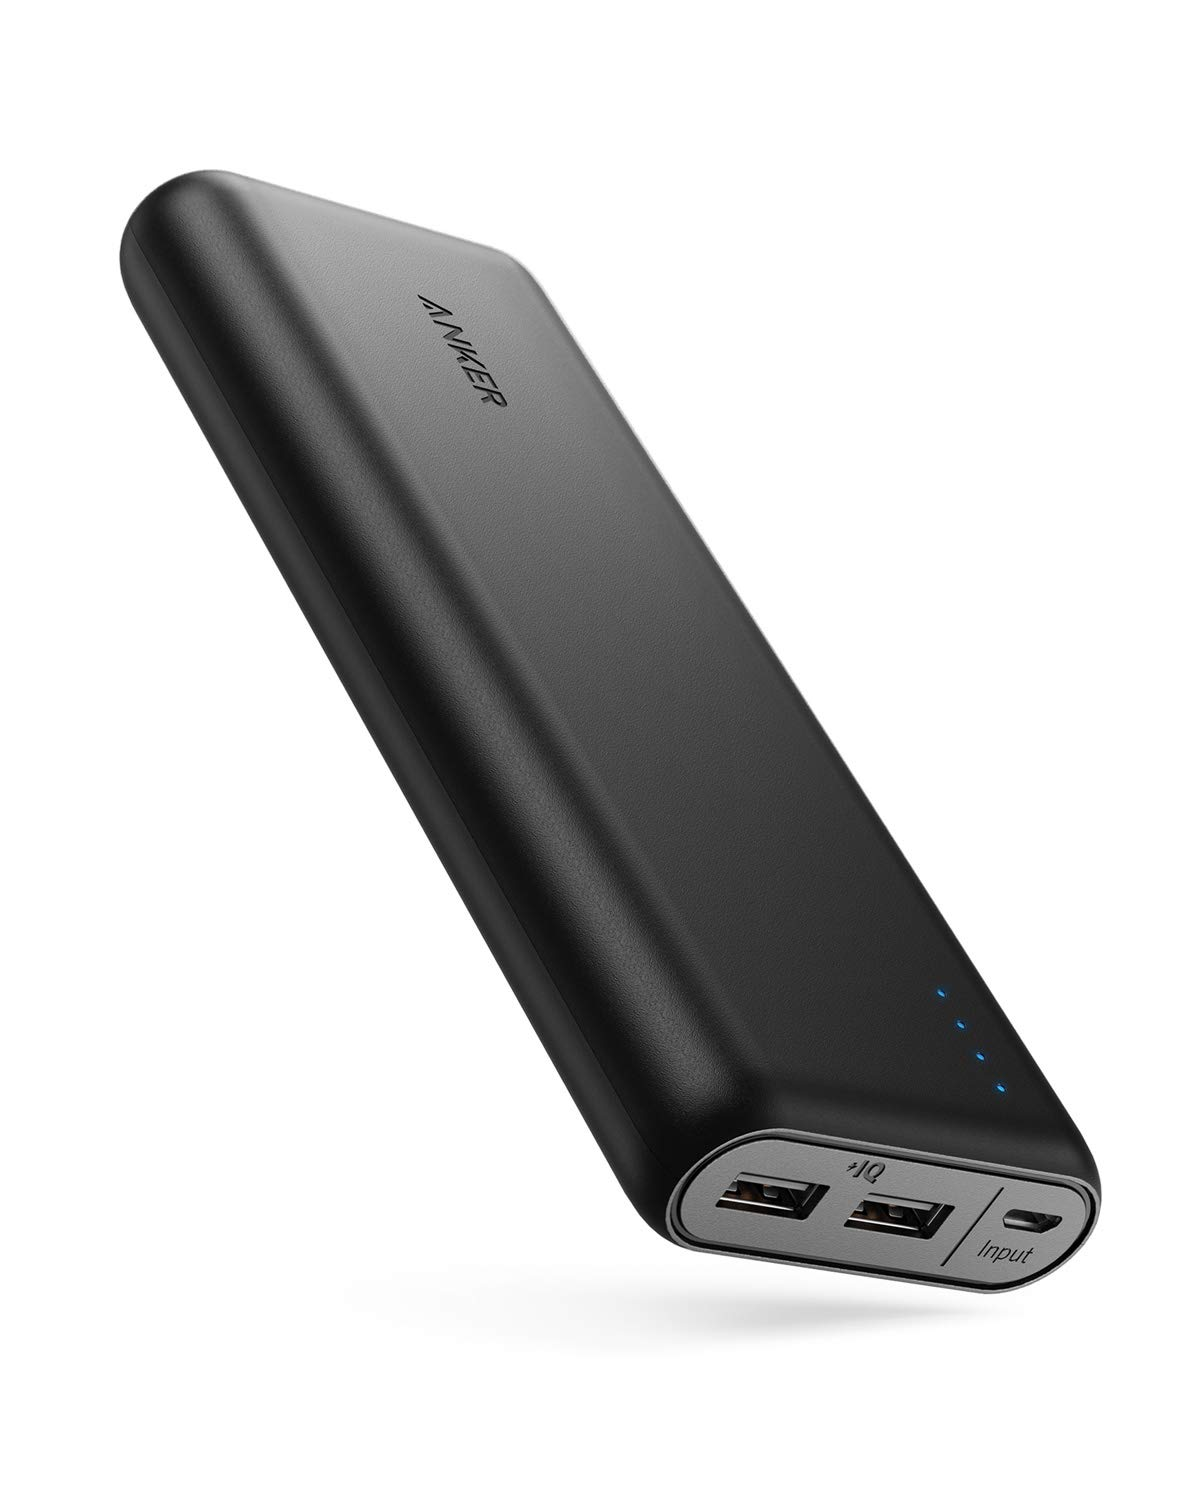 Portable Charger Anker PowerCore 20100mAh Best Portable Battery Charger